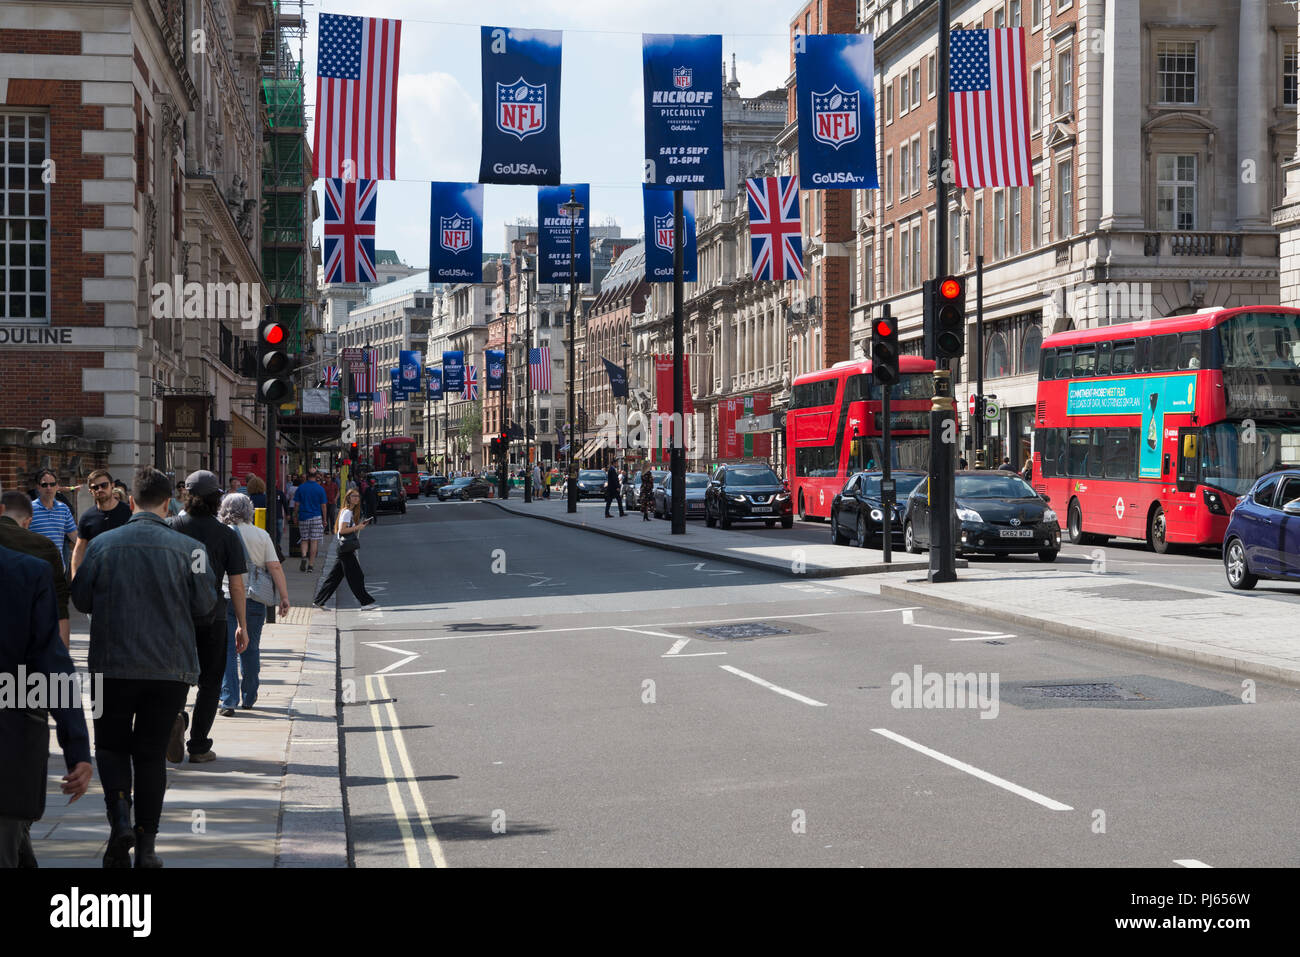 Busy street scene in Piccadilly, London. Advertising banners for the NFL and British and American flags hang above the street. England, UK - Stock Image